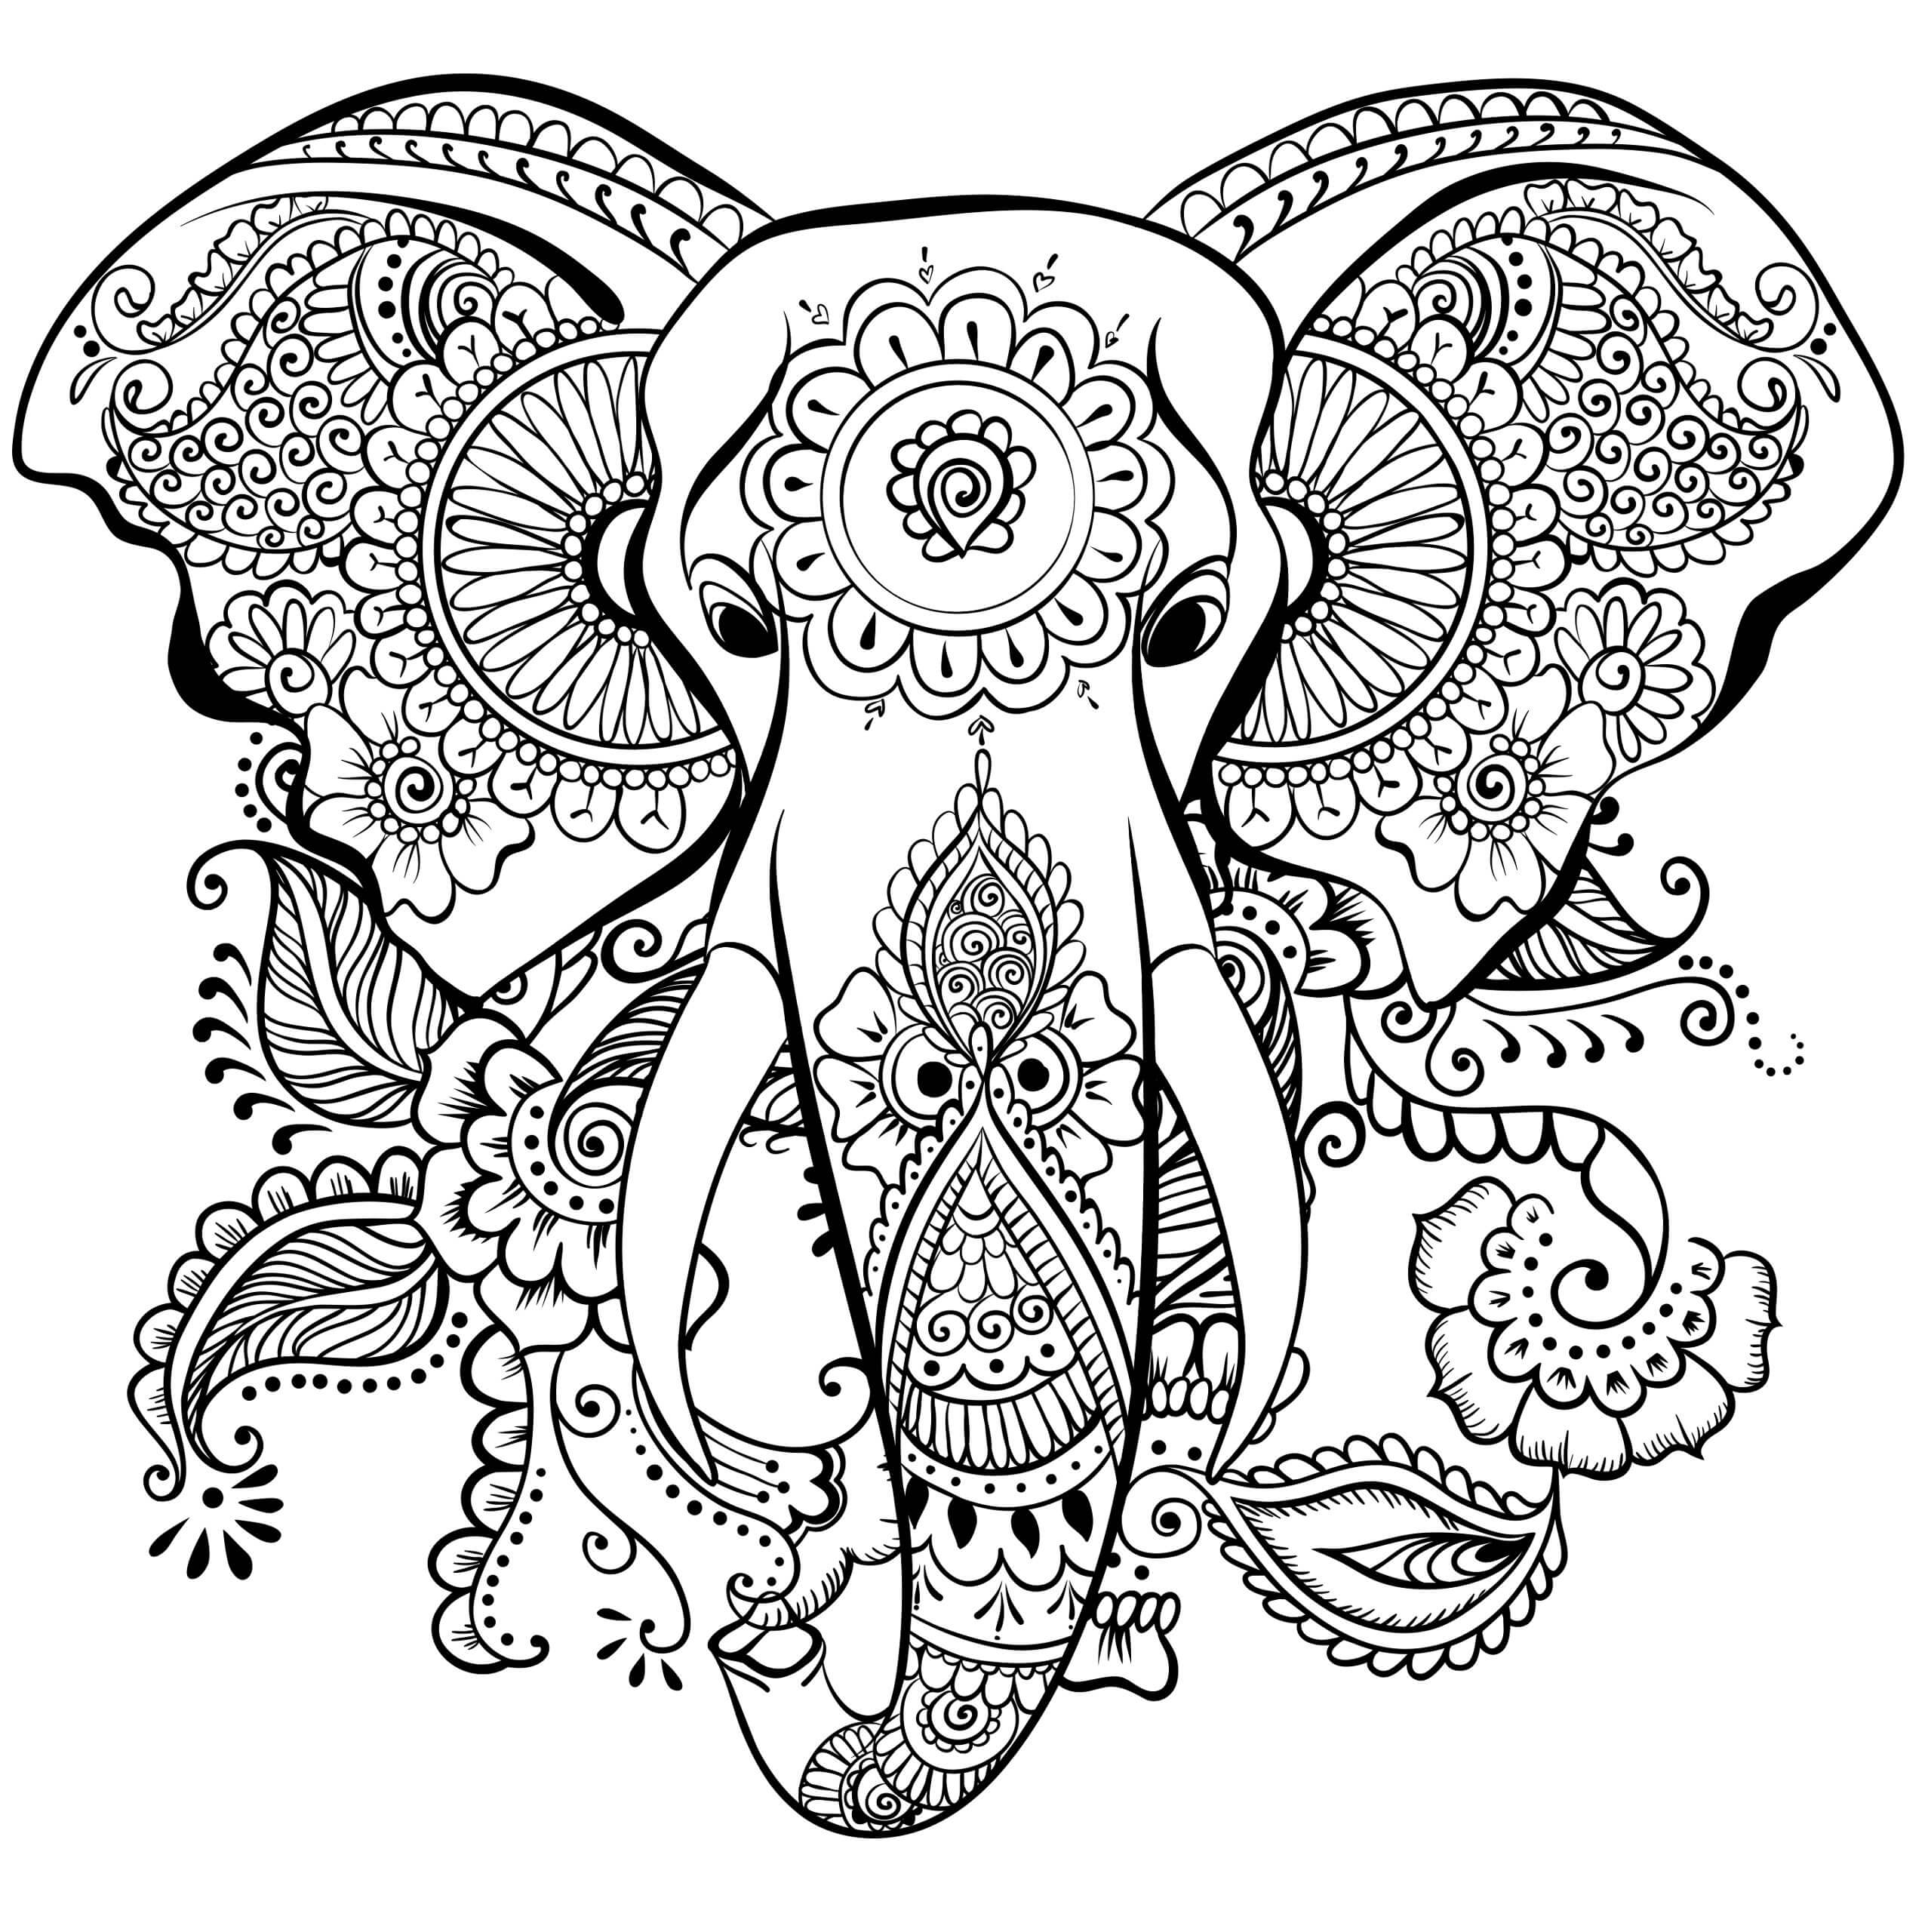 coloring pages for kids hard hard coloring pages for adults best coloring pages for kids hard for kids coloring pages